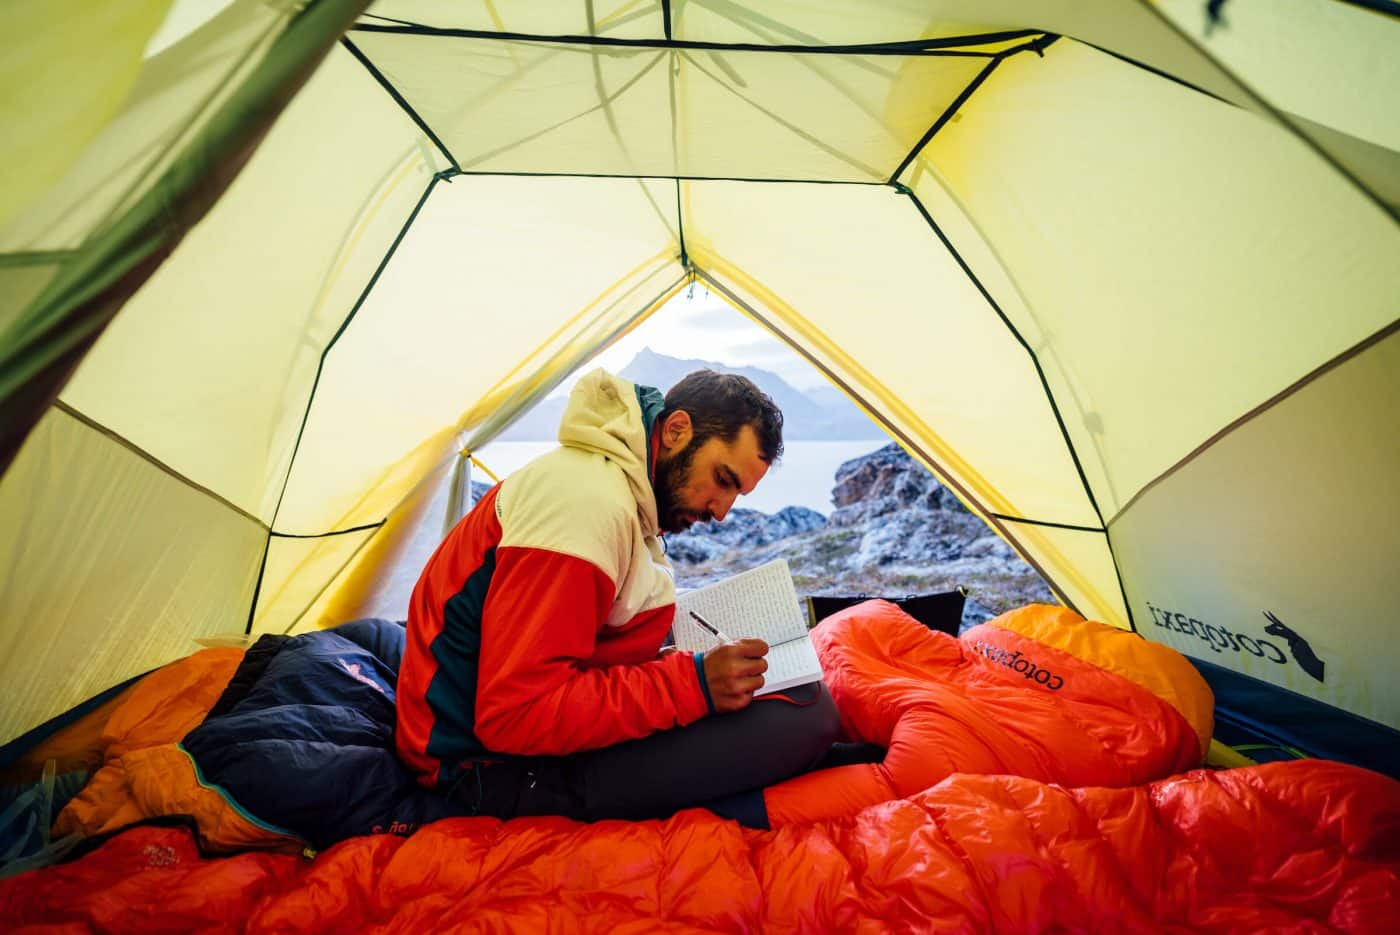 Inside a tent, a camper journals to his wife, water background, Between Kulusuk & Kuummiut. By Chris Brinlee Jr